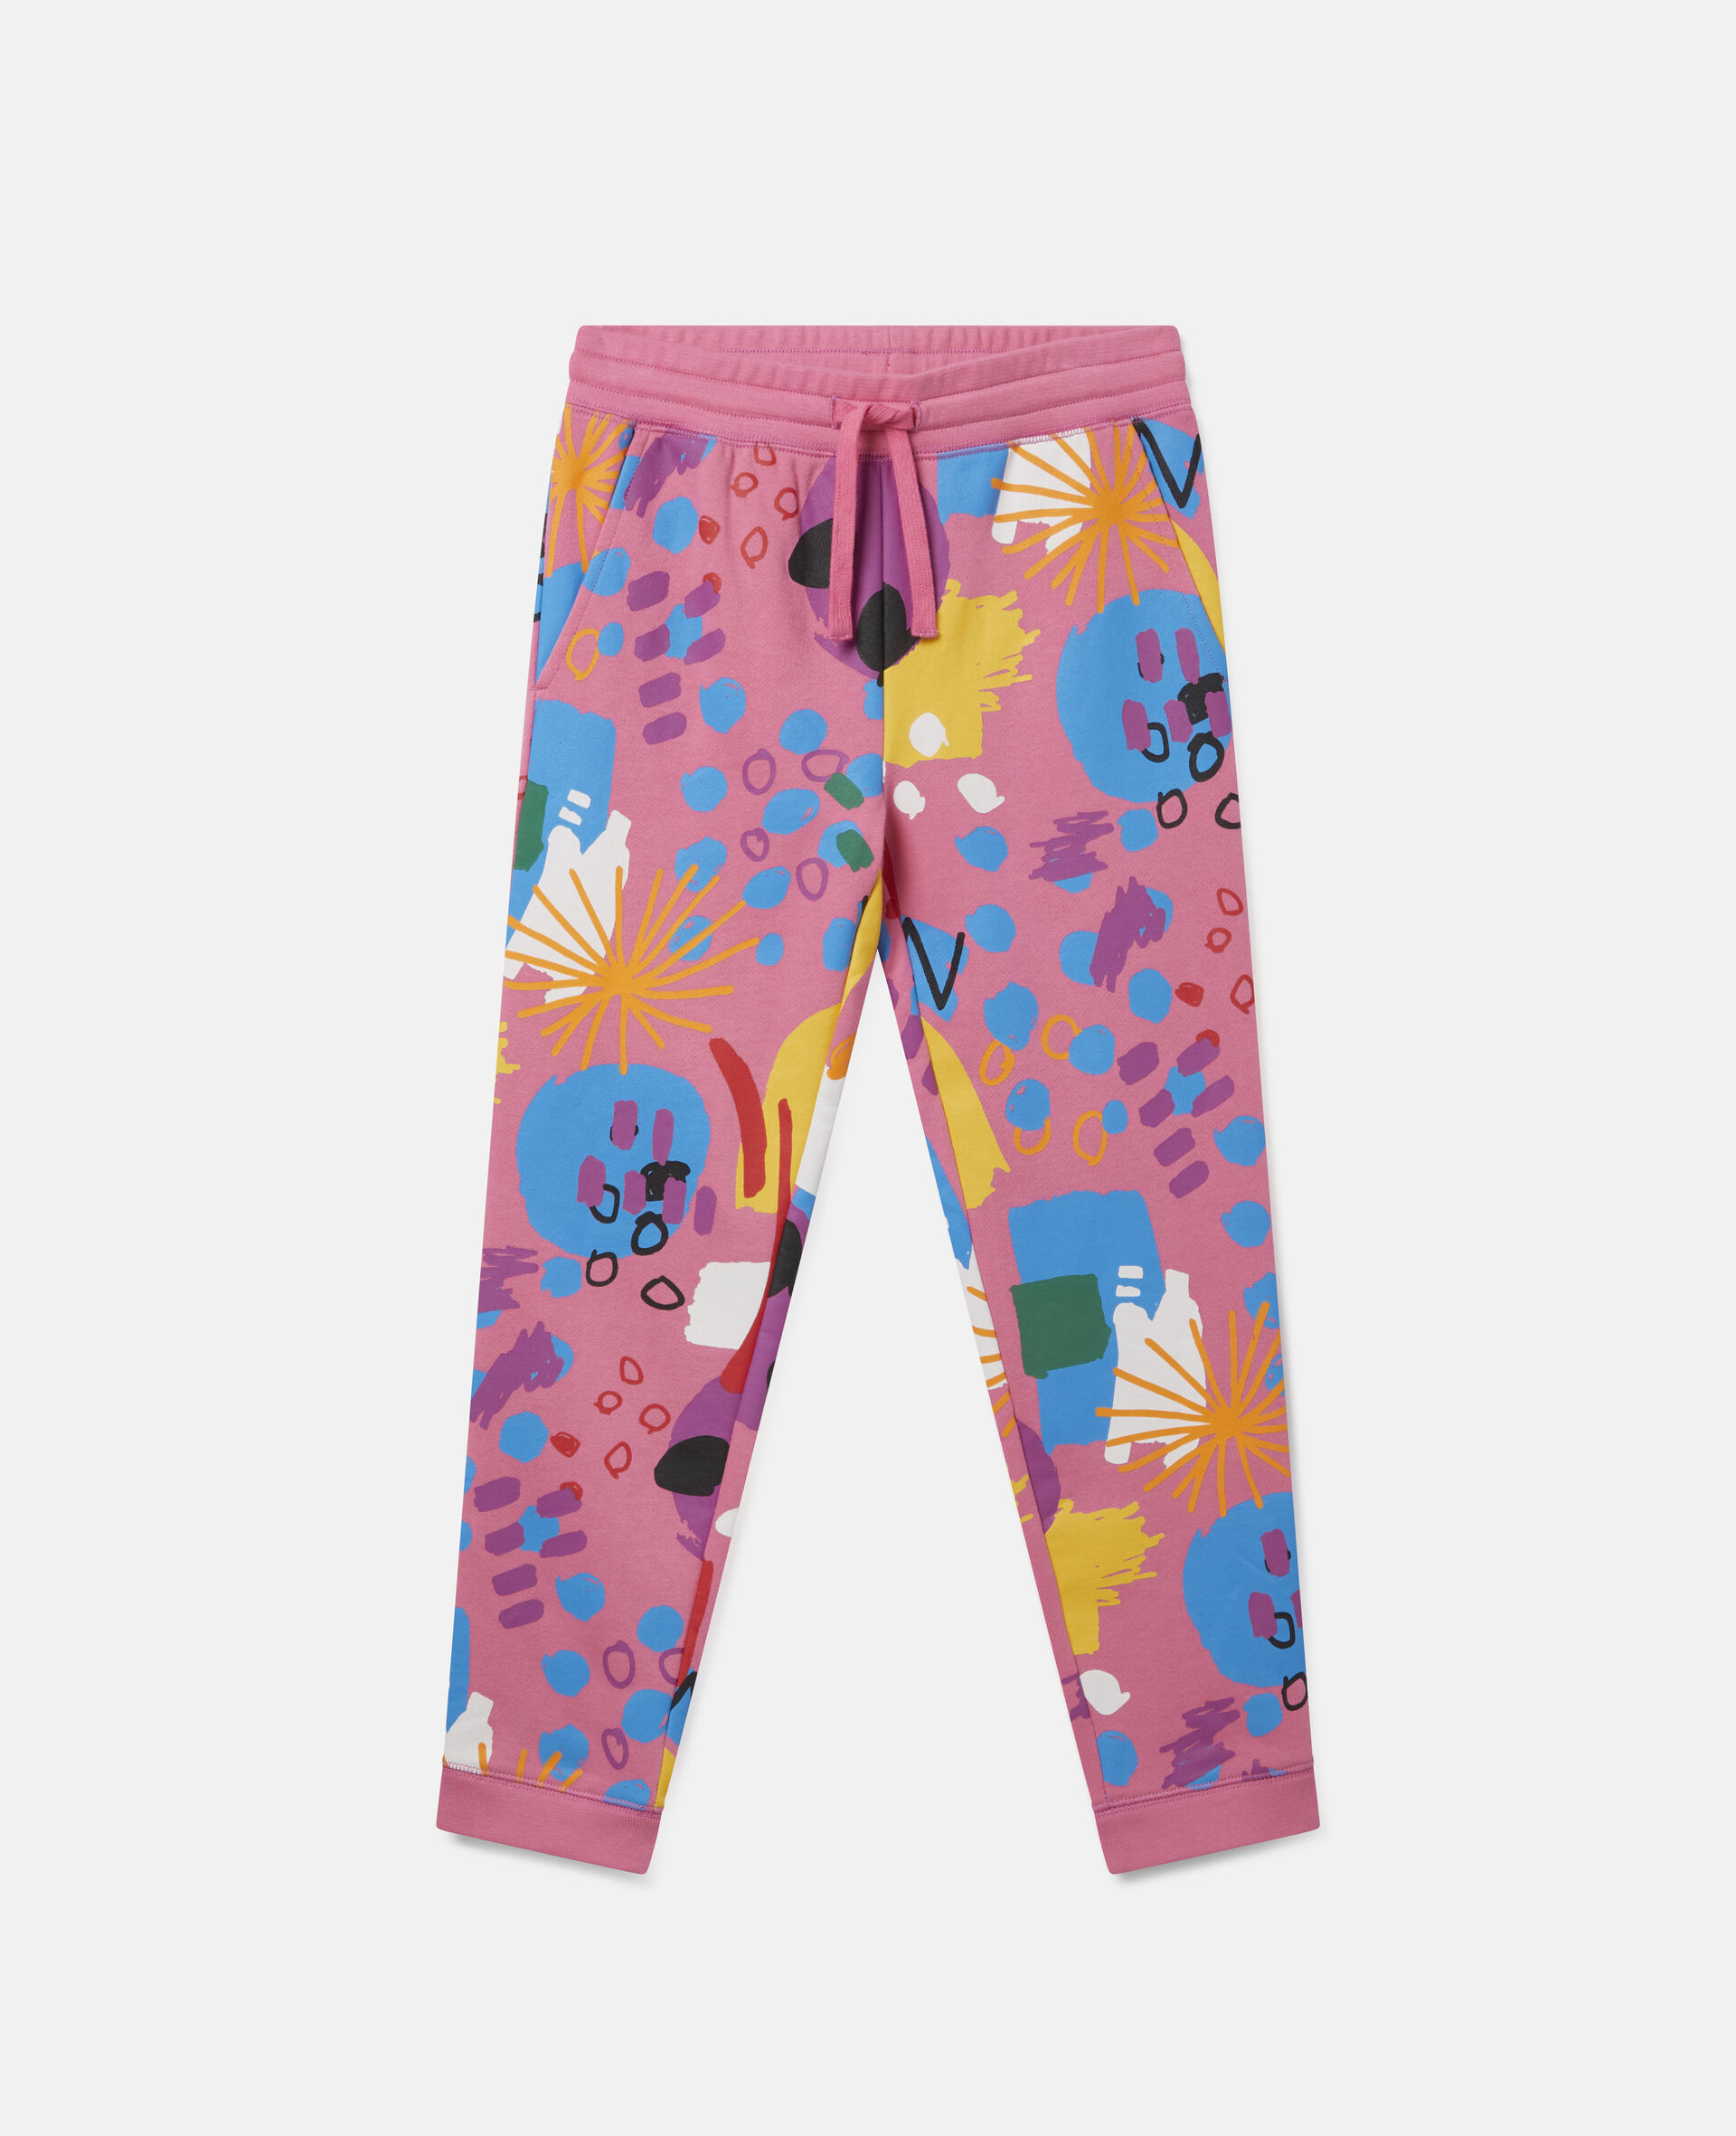 Painting Cotton Fleece Joggers-Pink-large image number 0